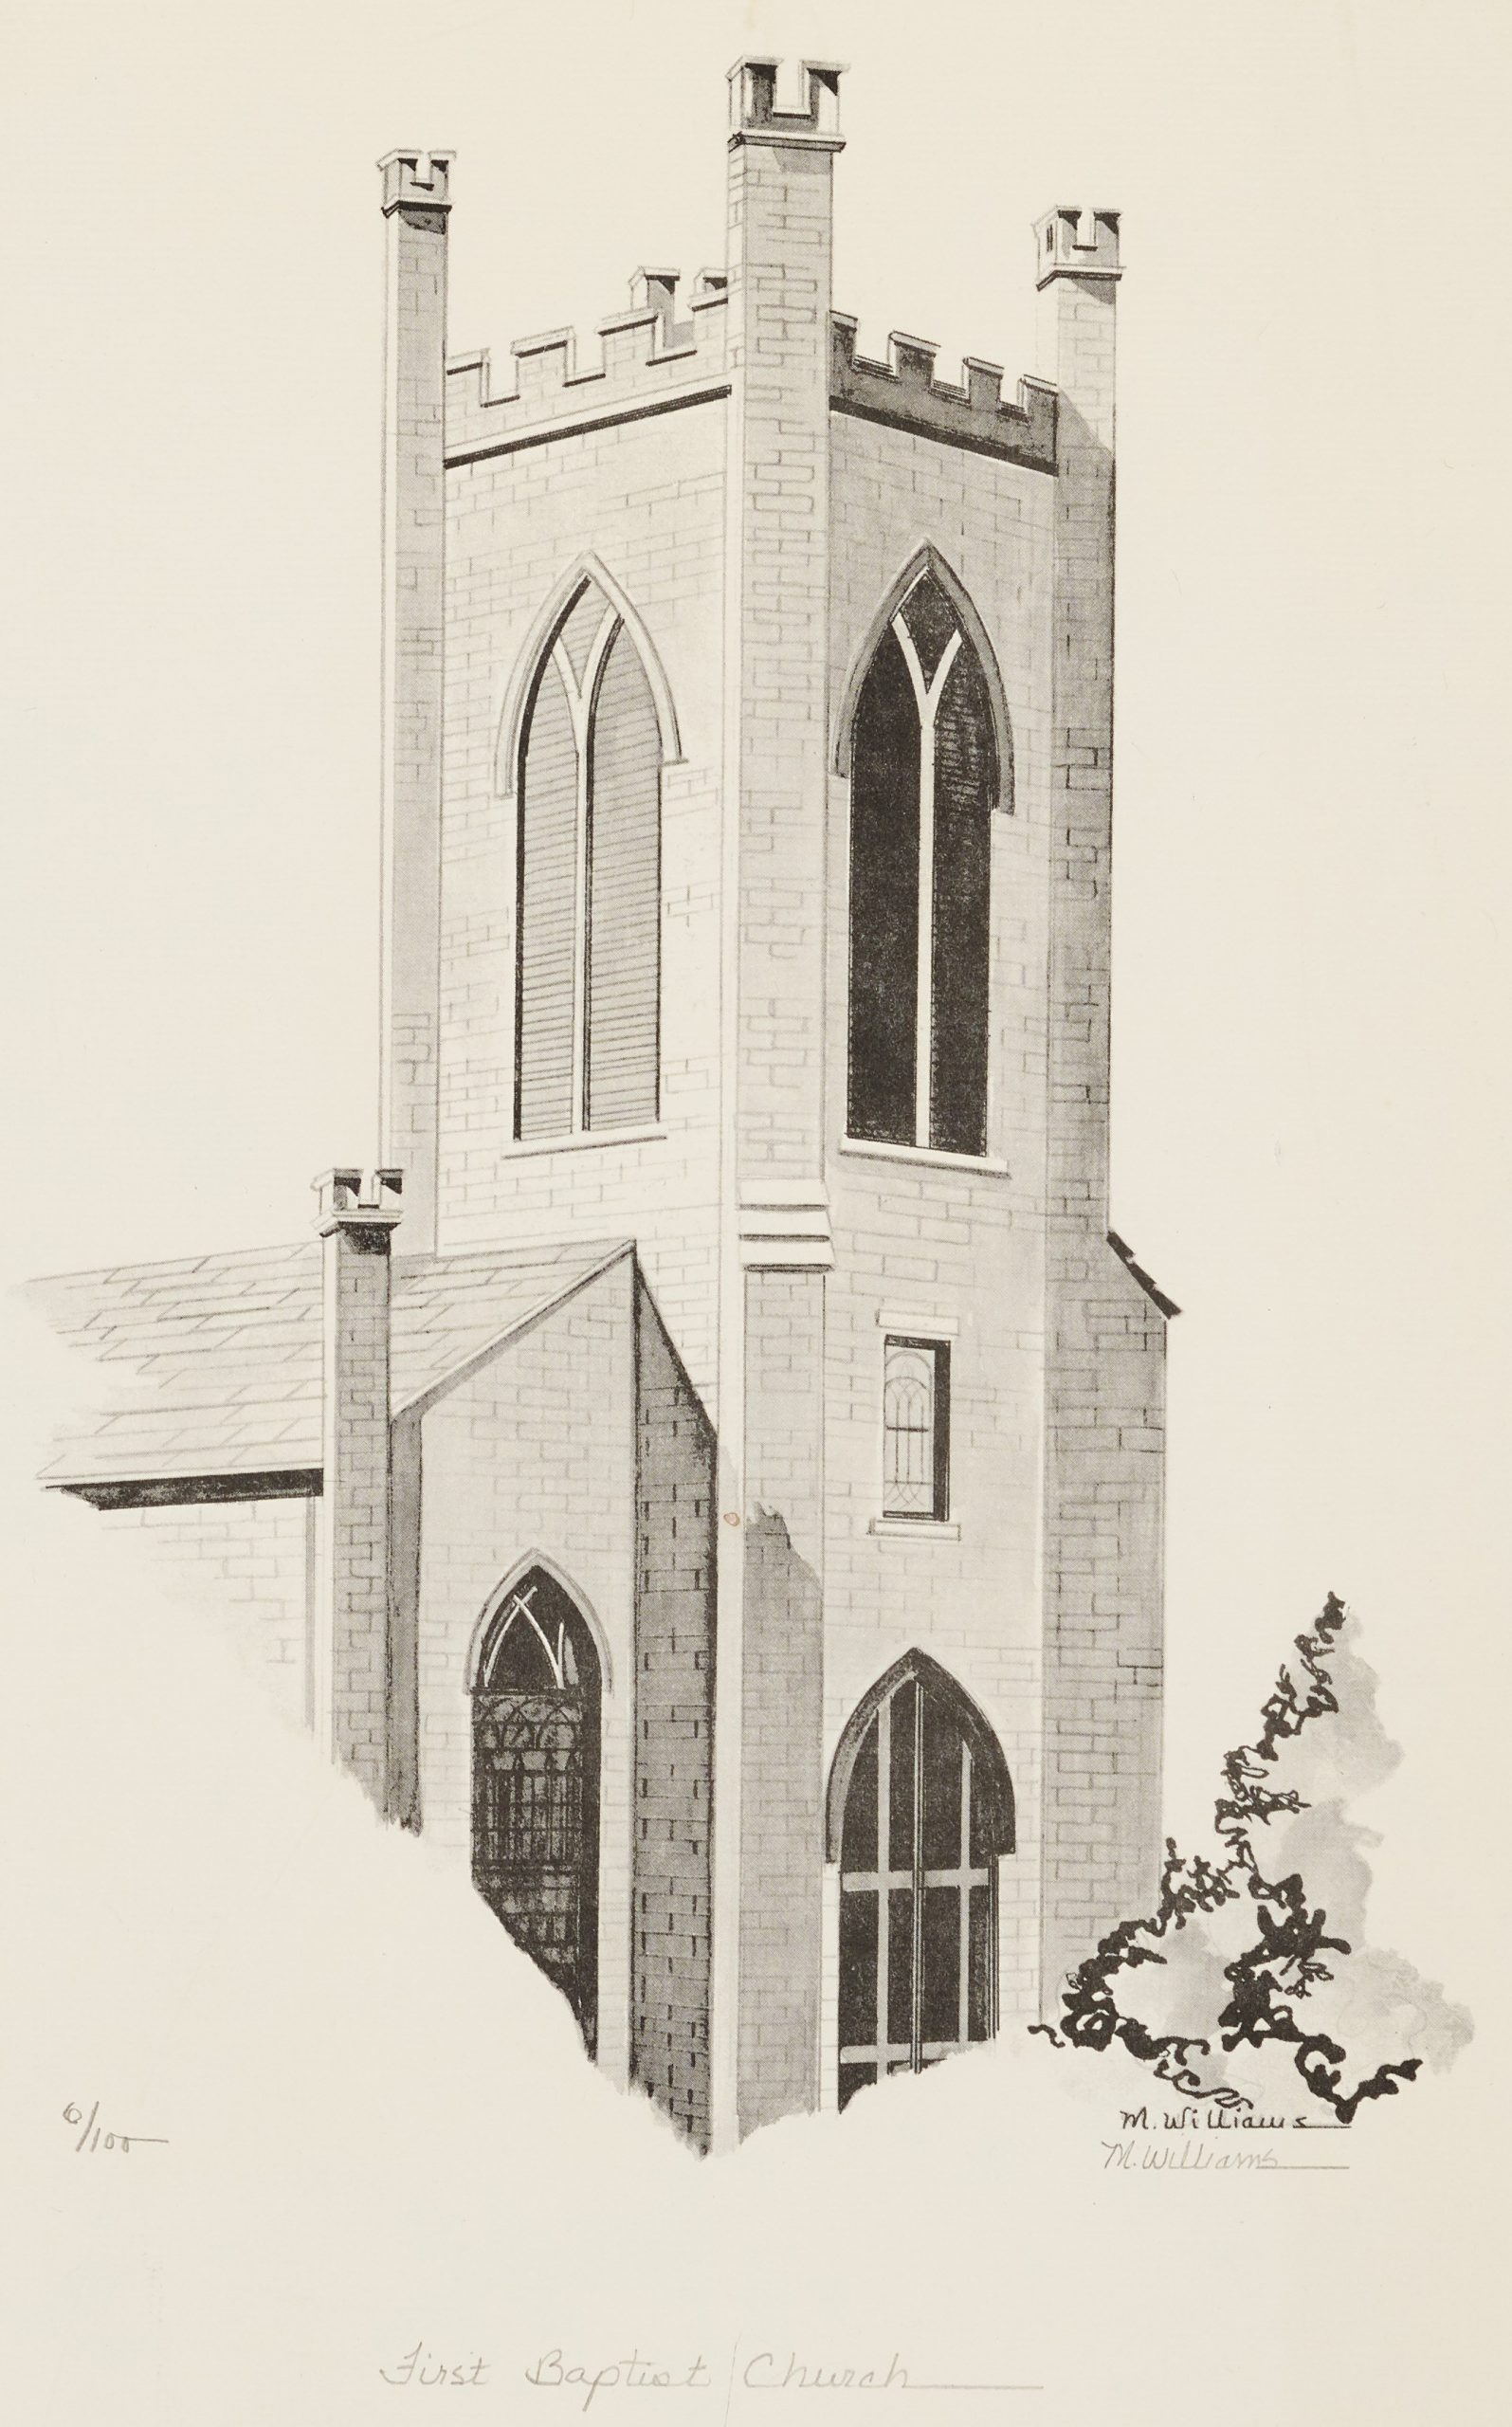 Print of the First Baptist Church steeple.